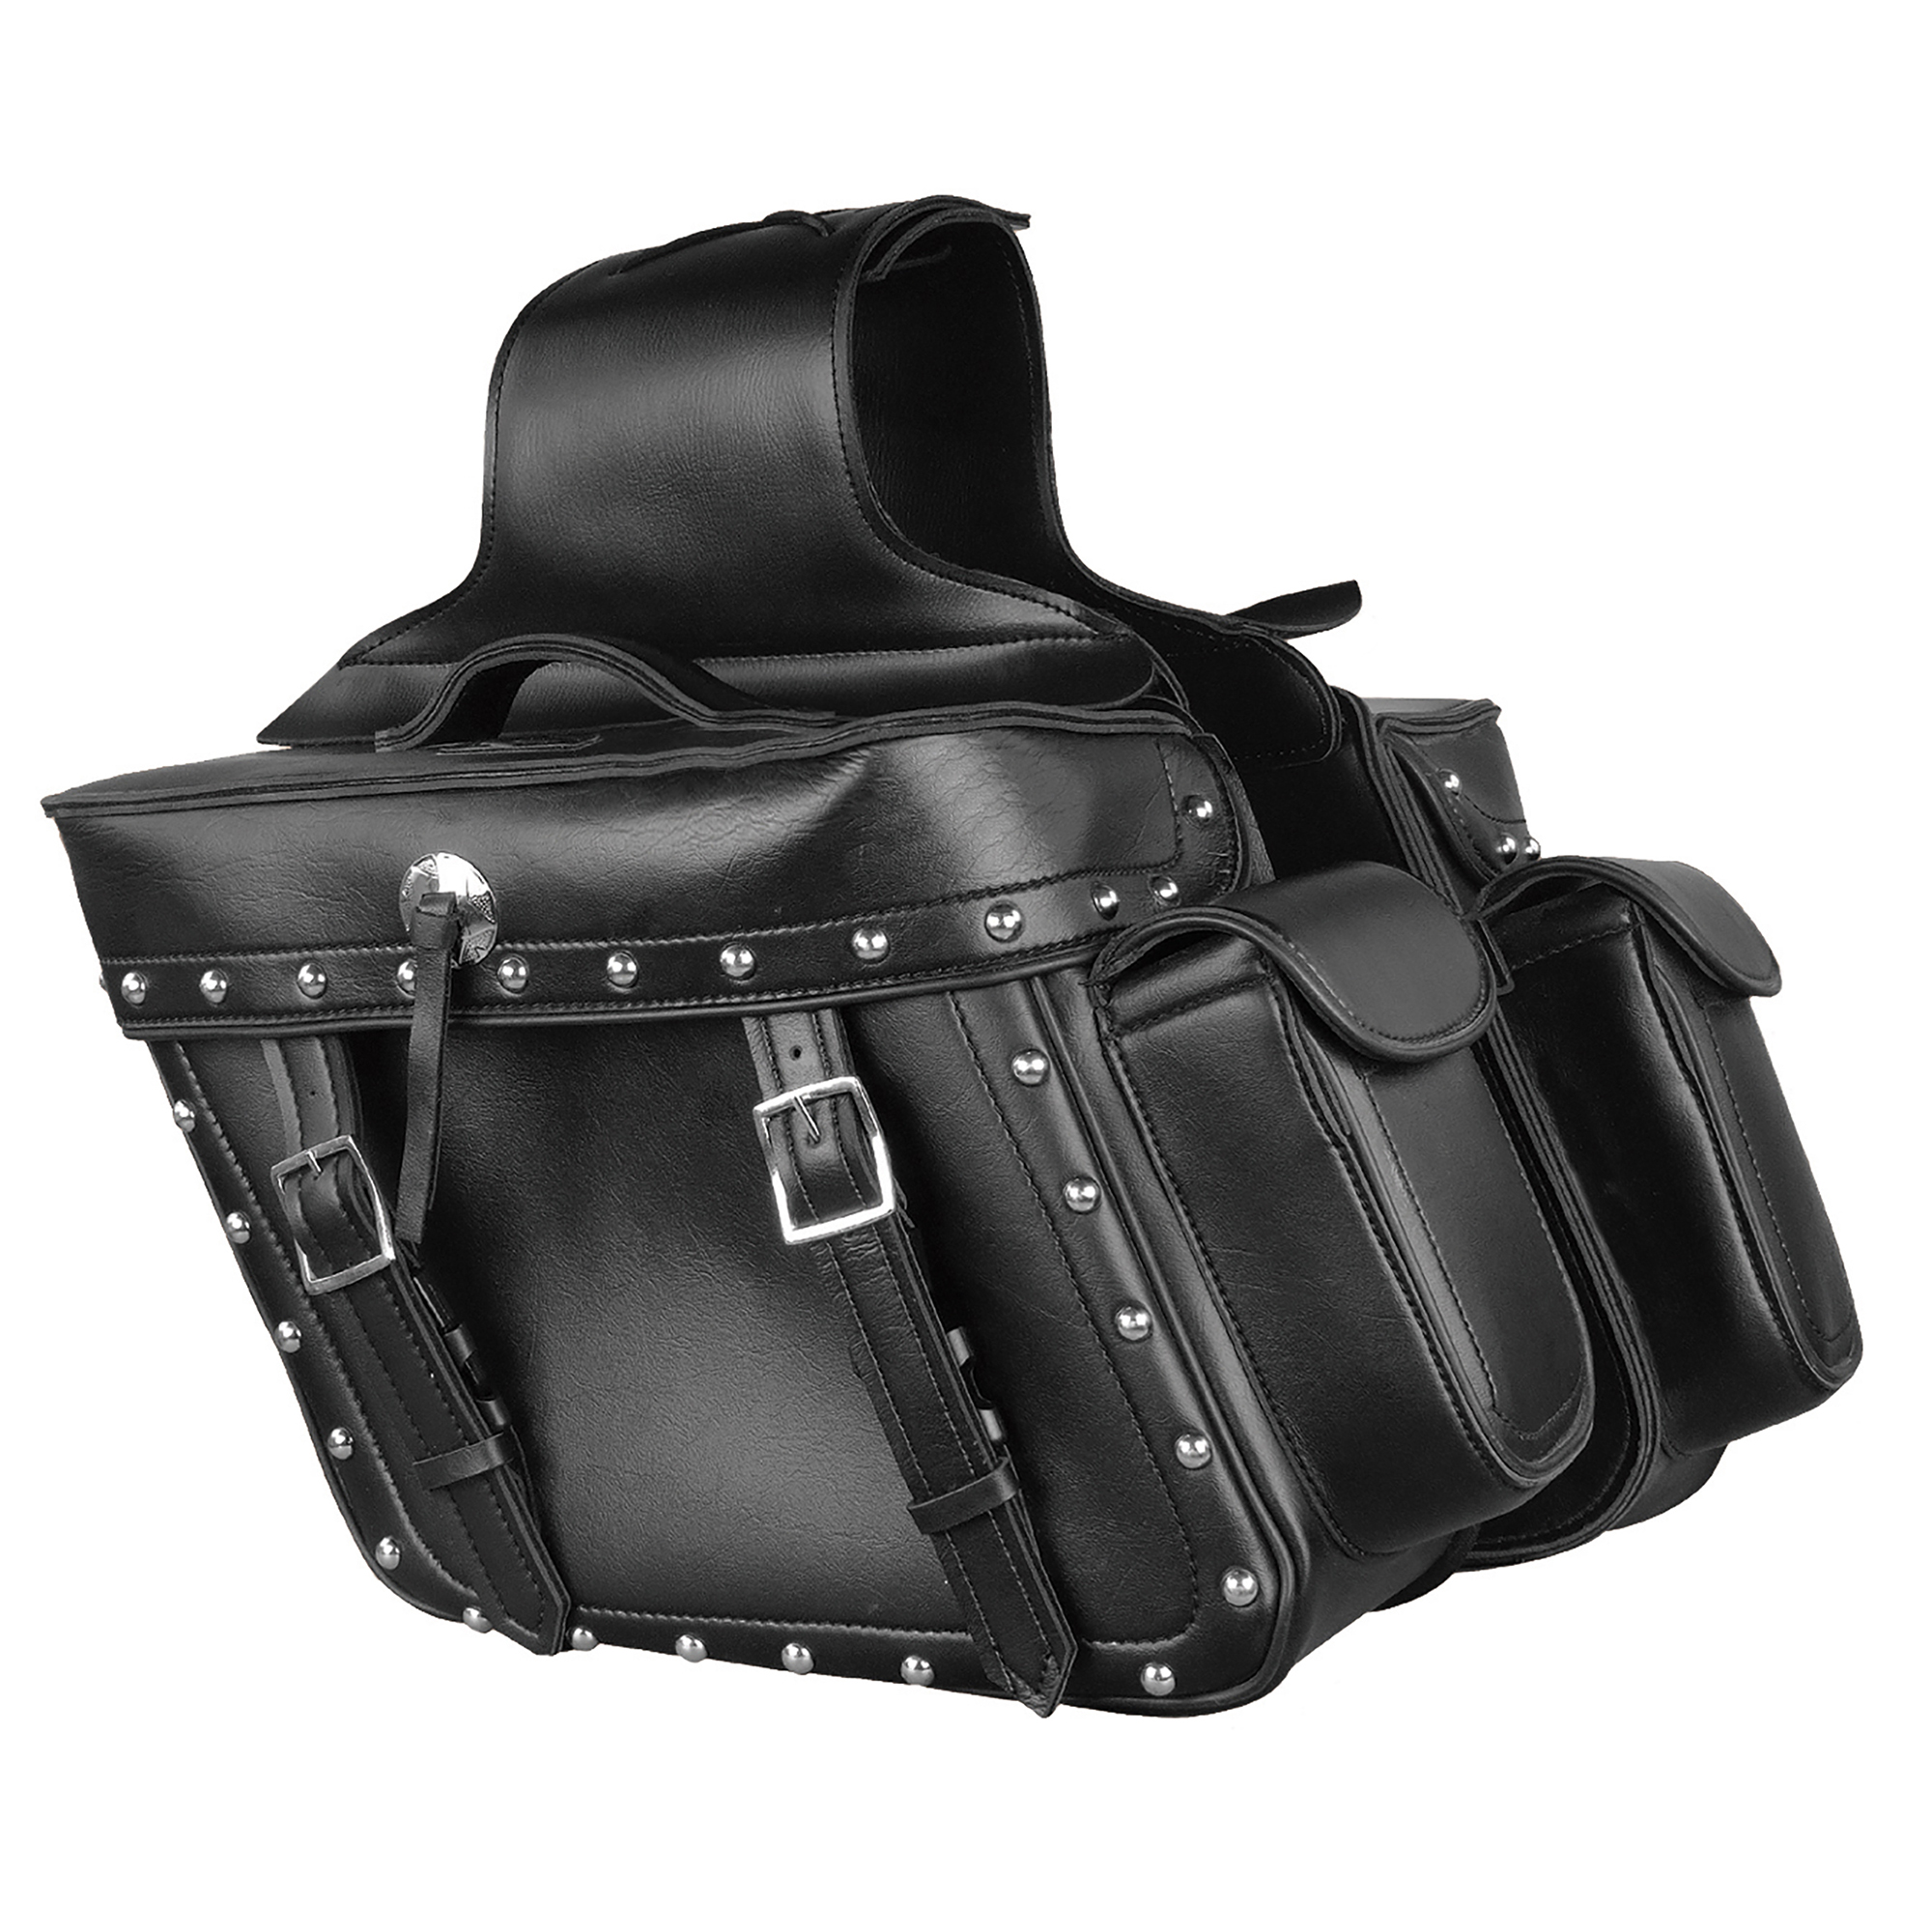 Dynamic Leather - Site - photo #32